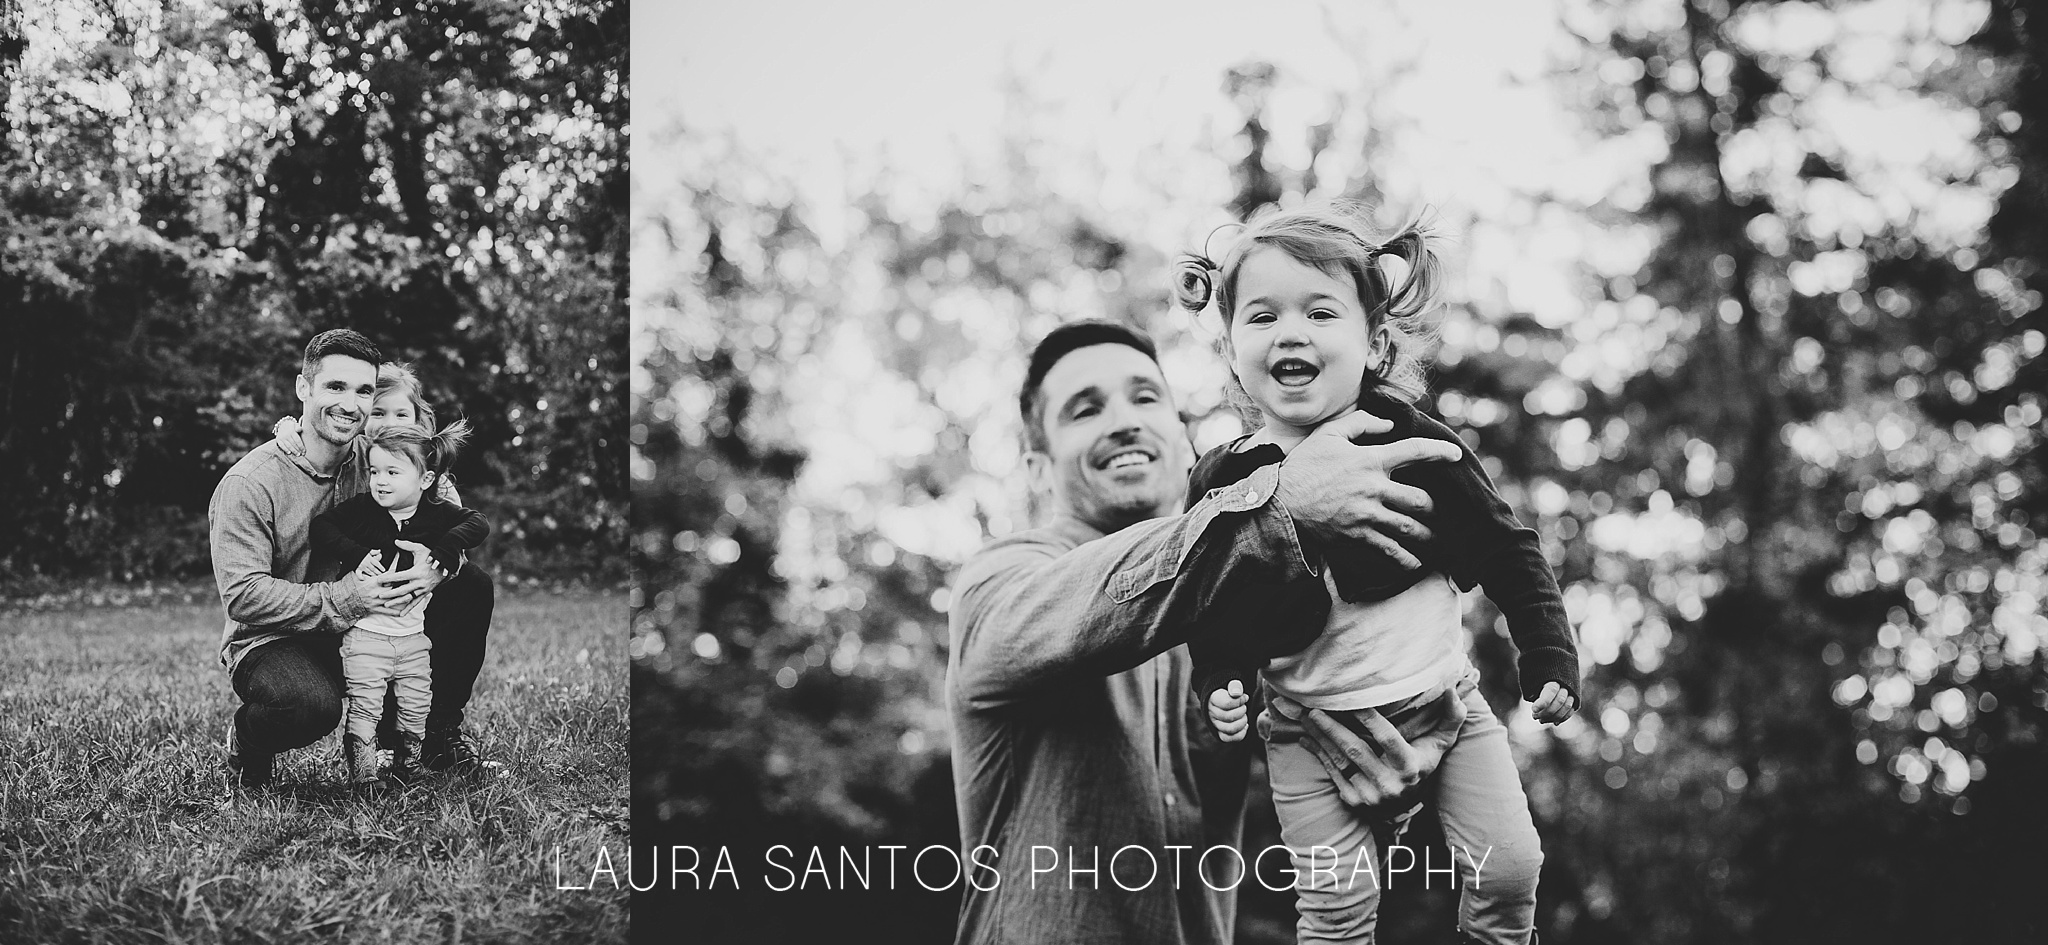 Laura Santos Photography Portland Oregon Family Photographer_0085.jpg